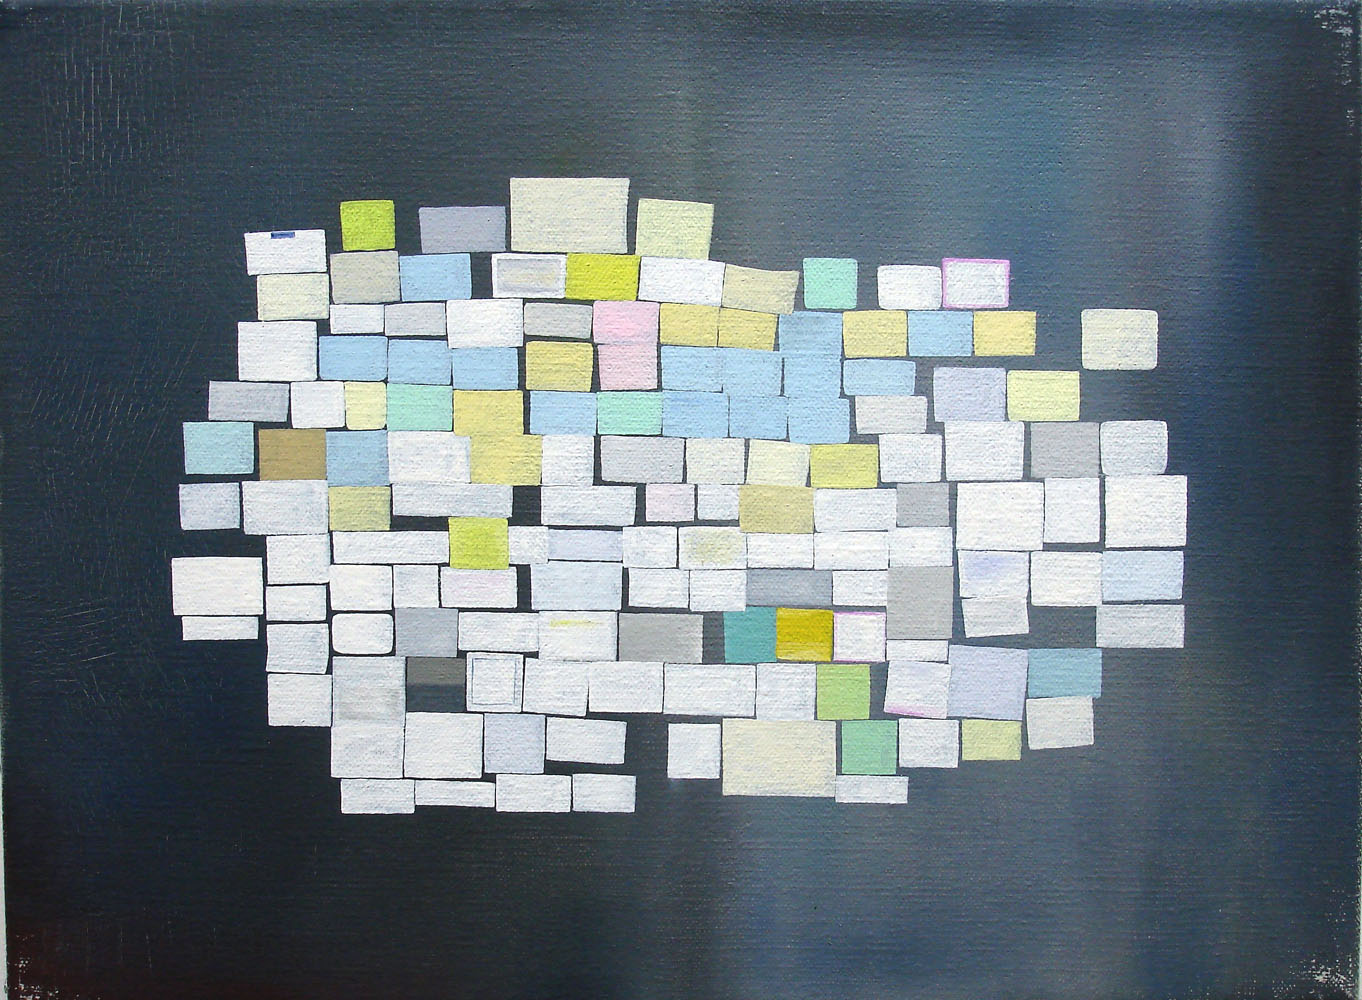 Notices    2006, oil on canvas, 30 x 40cm